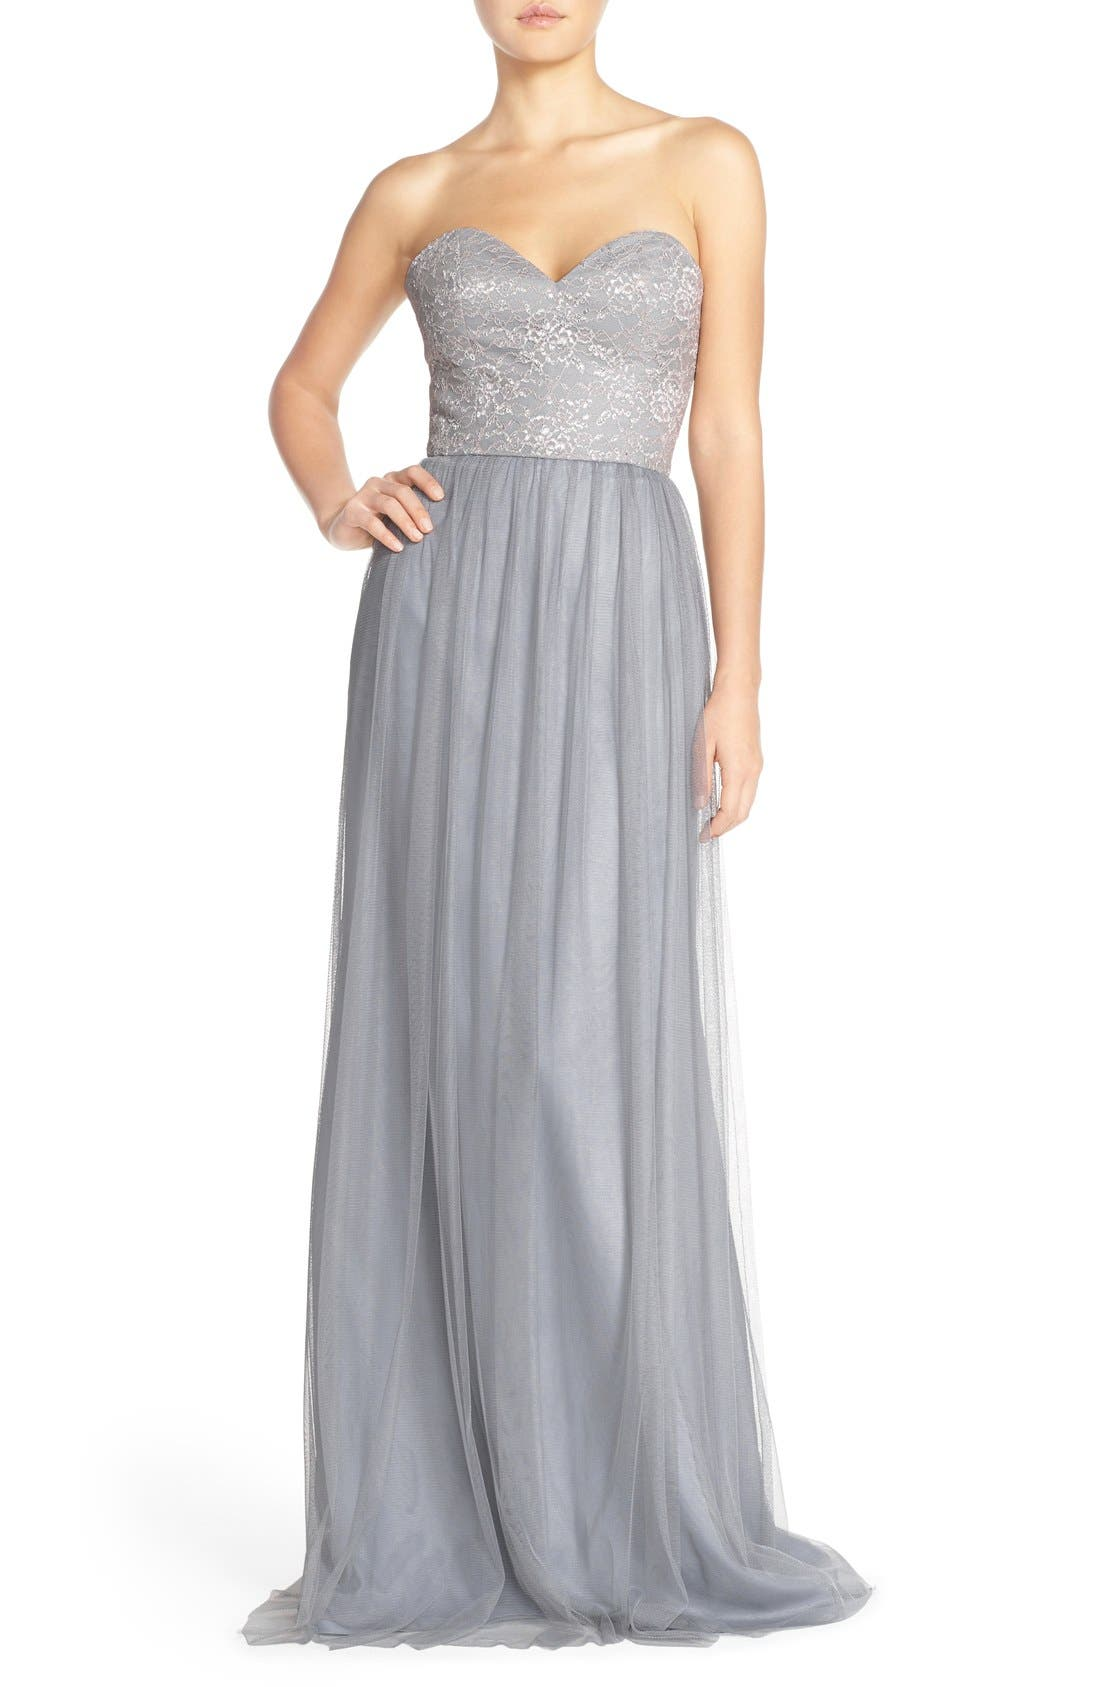 HAYLEY PAIGE OCCASIONS Strapless Metallic Lace & Net